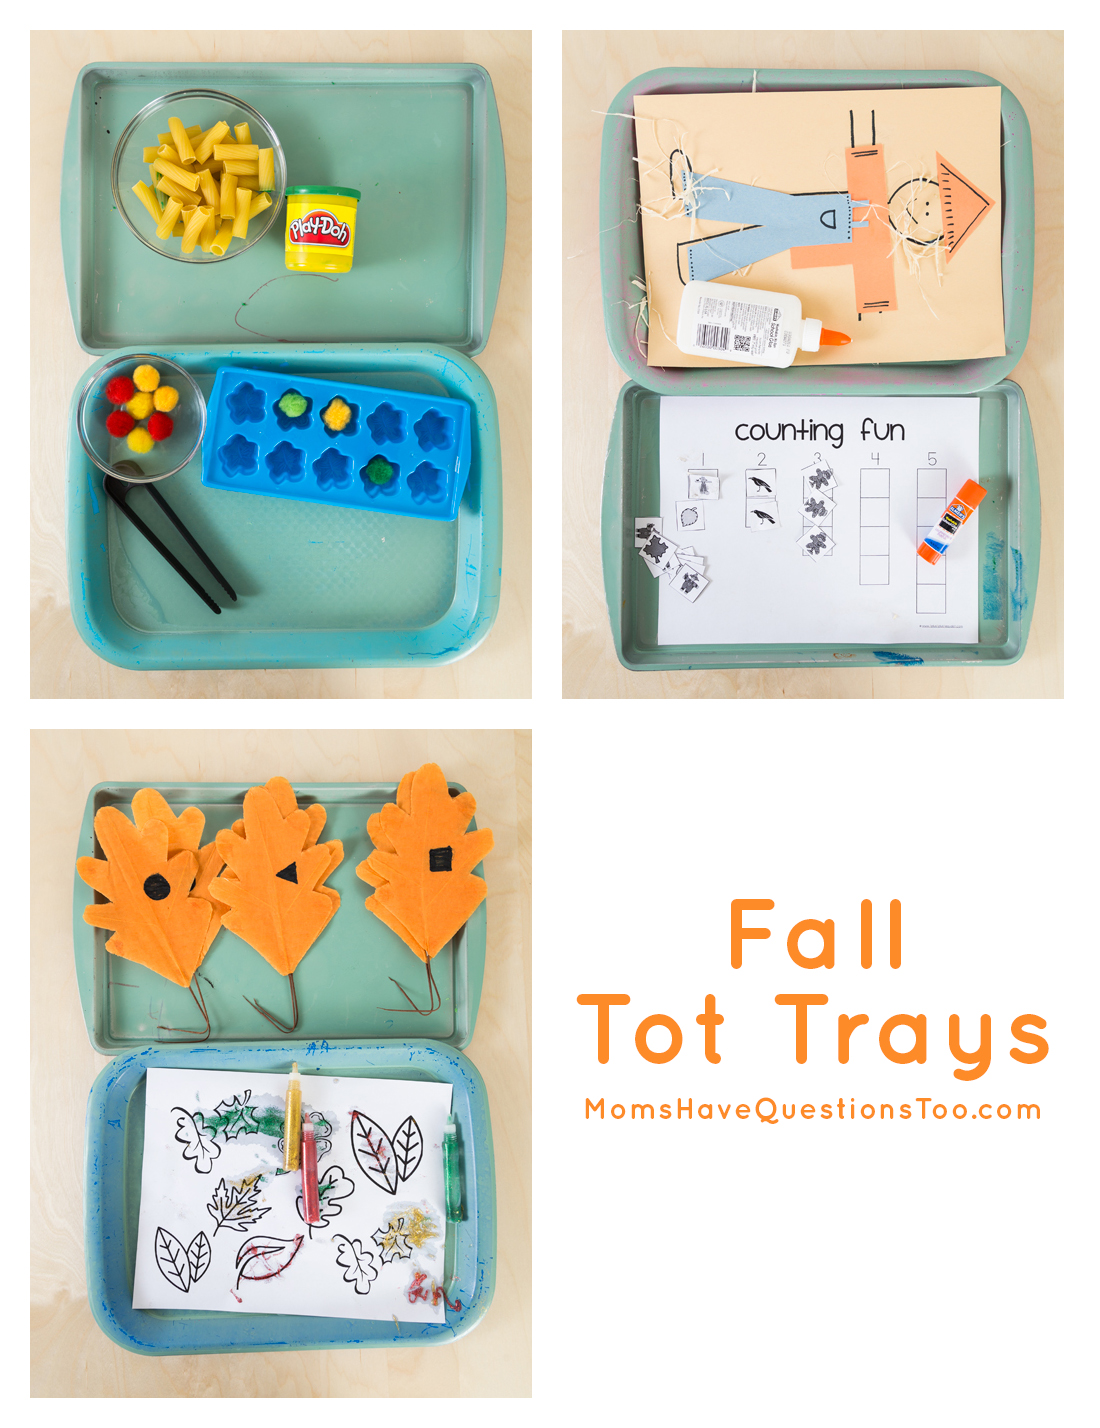 Great activities for Fall Tot Trays - Moms Have Questions Too